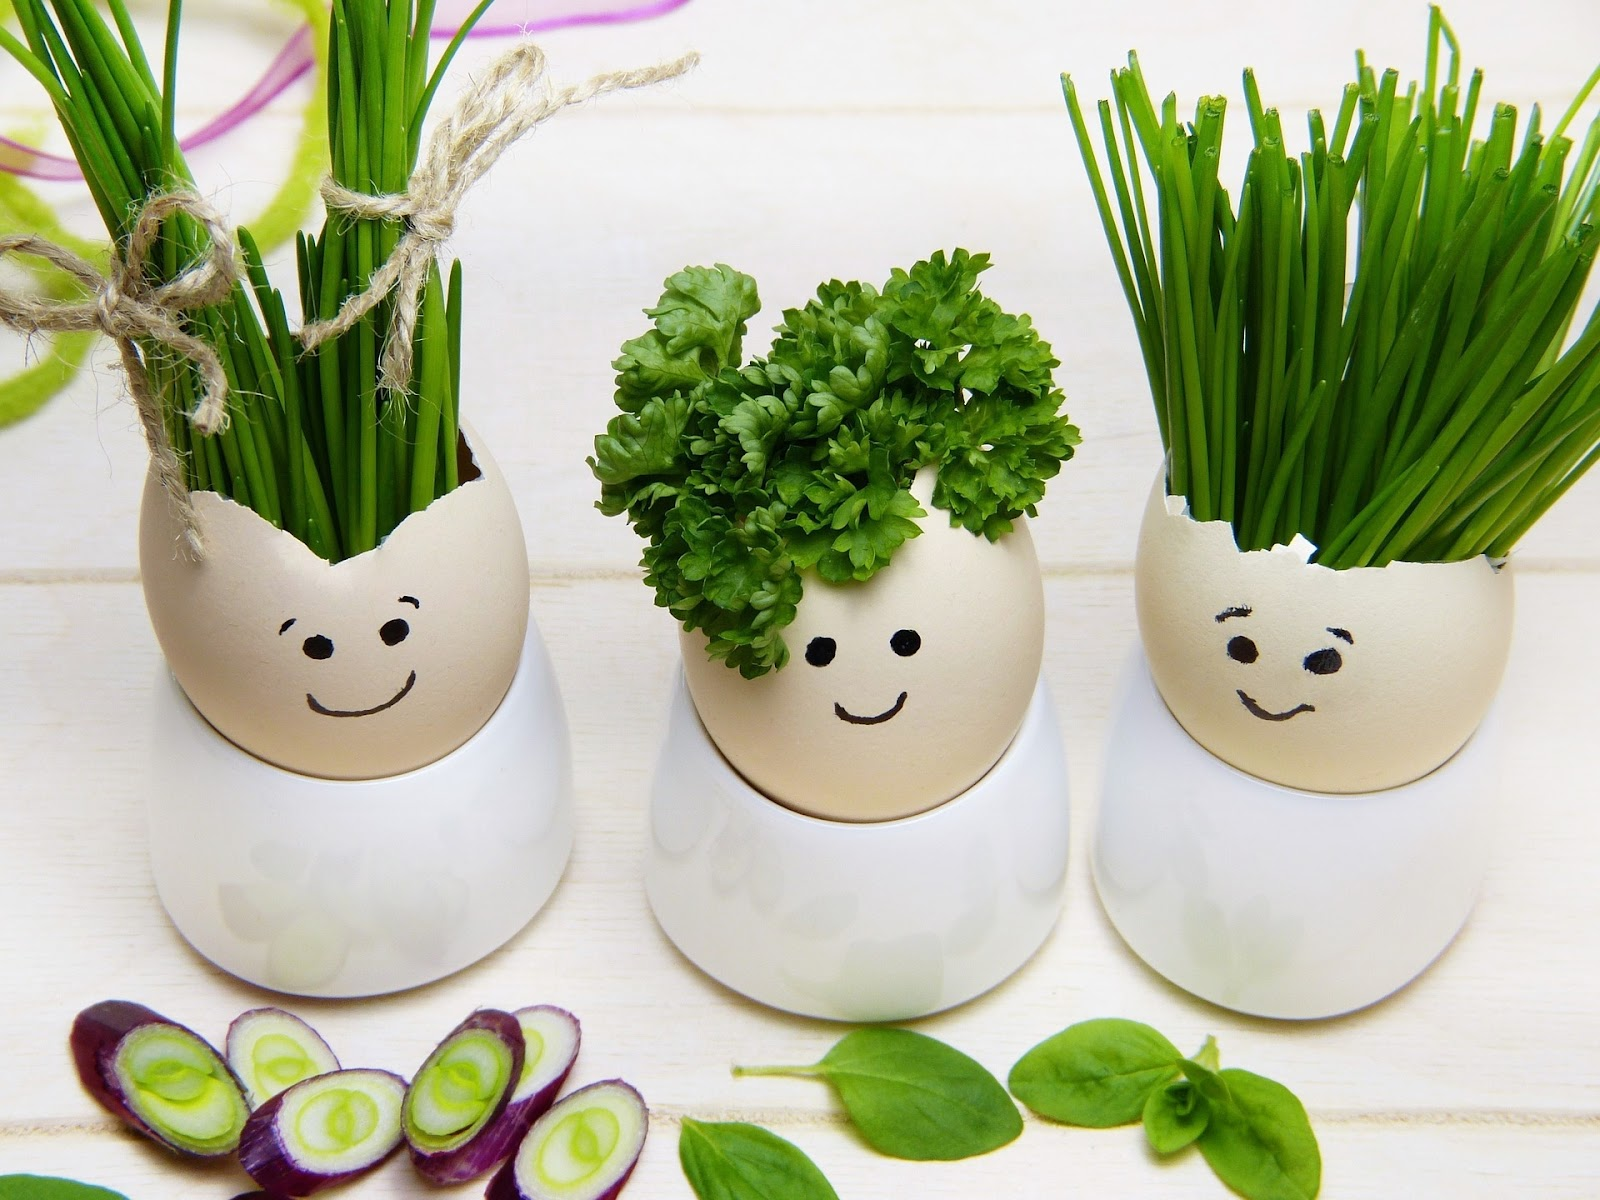 Herbs in eggshell planters